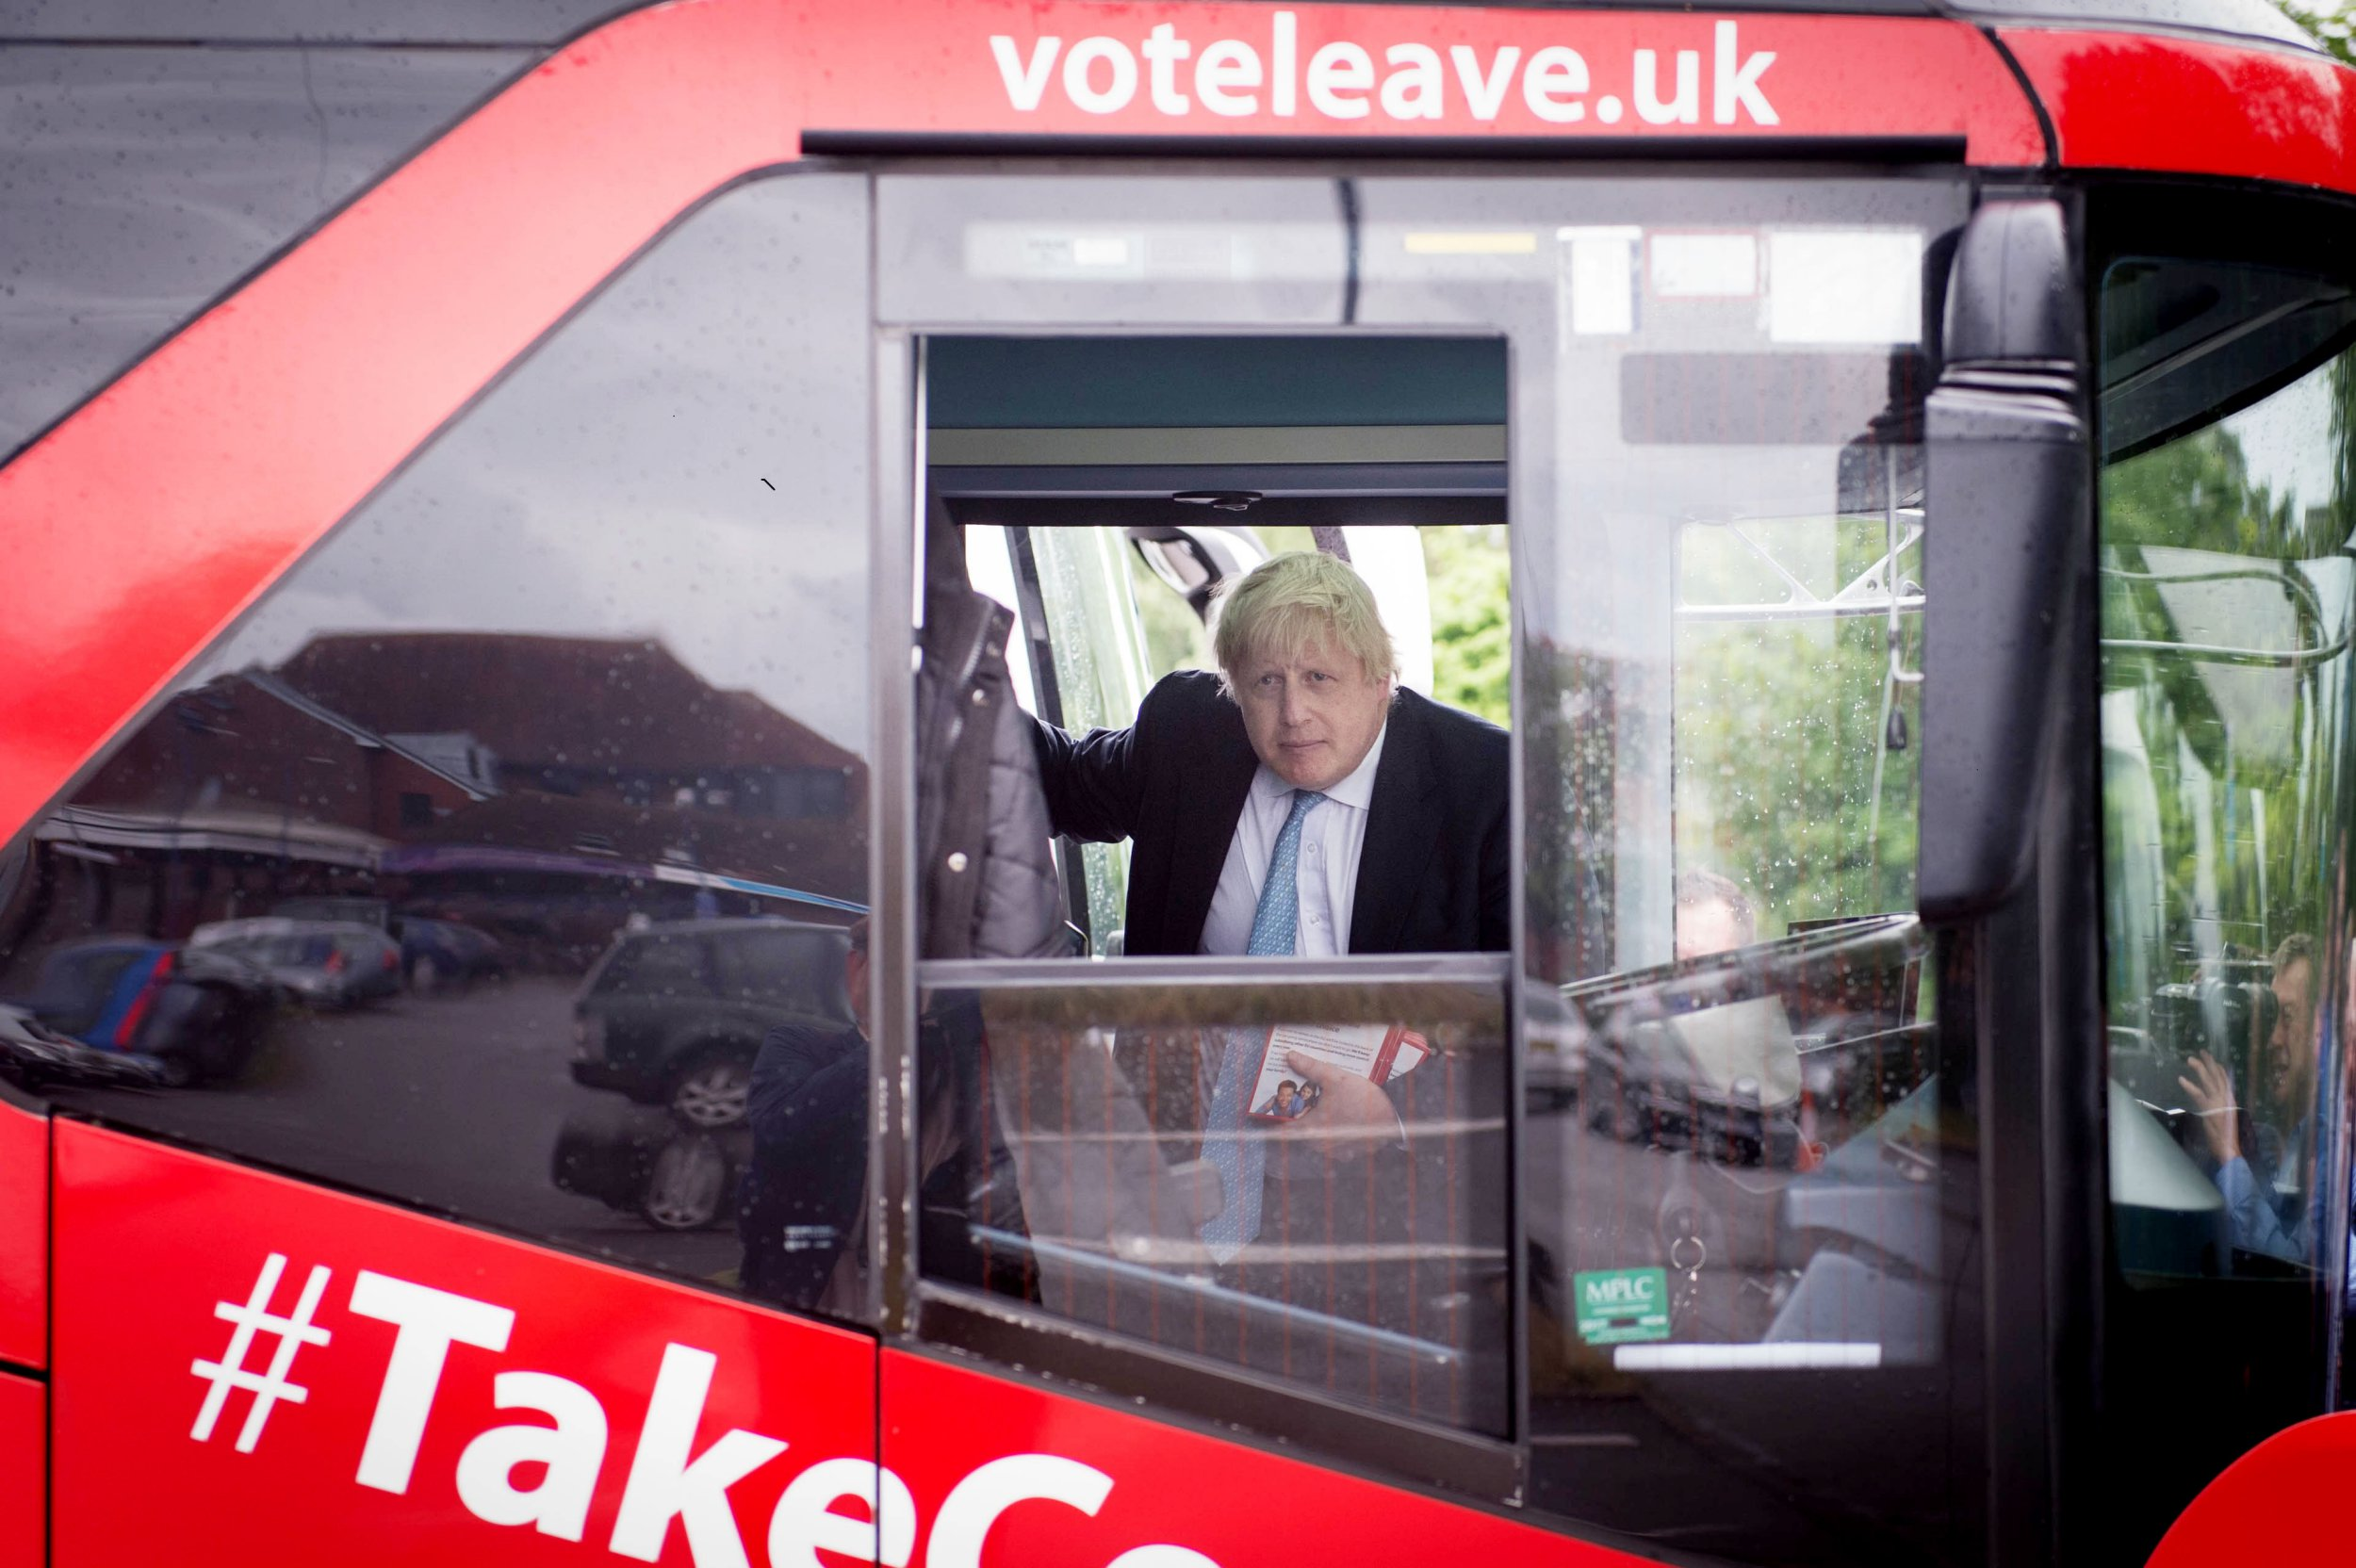 Boris Johnson look out from the Vote Leave bus in Henley in Berkshire, during a day of campaigning, as part of the Vote Leave EU referendum campaign.